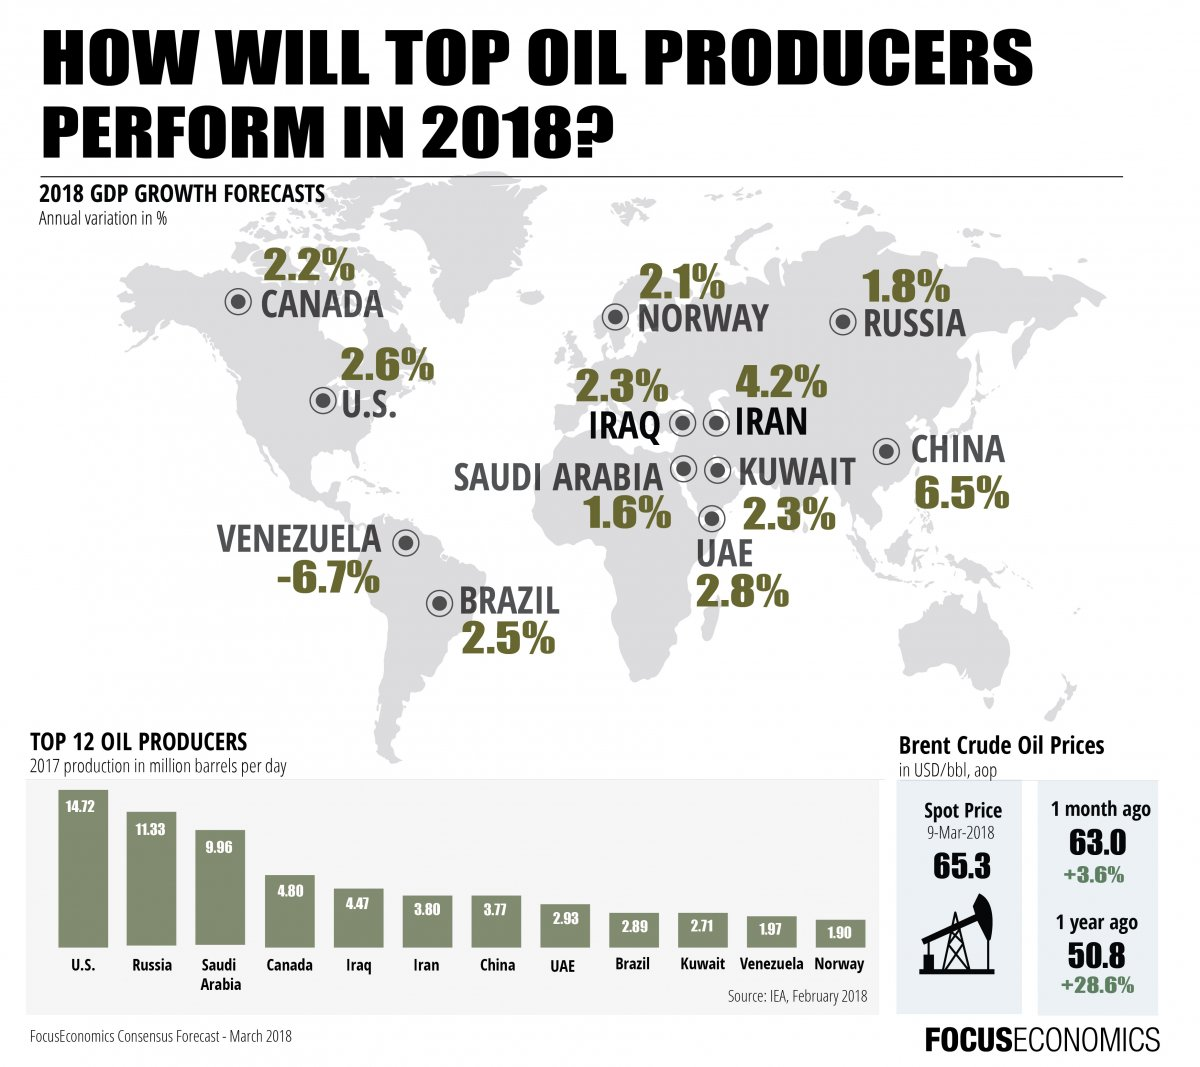 focuseconomics_top_oil_producers_march_2018.jpg